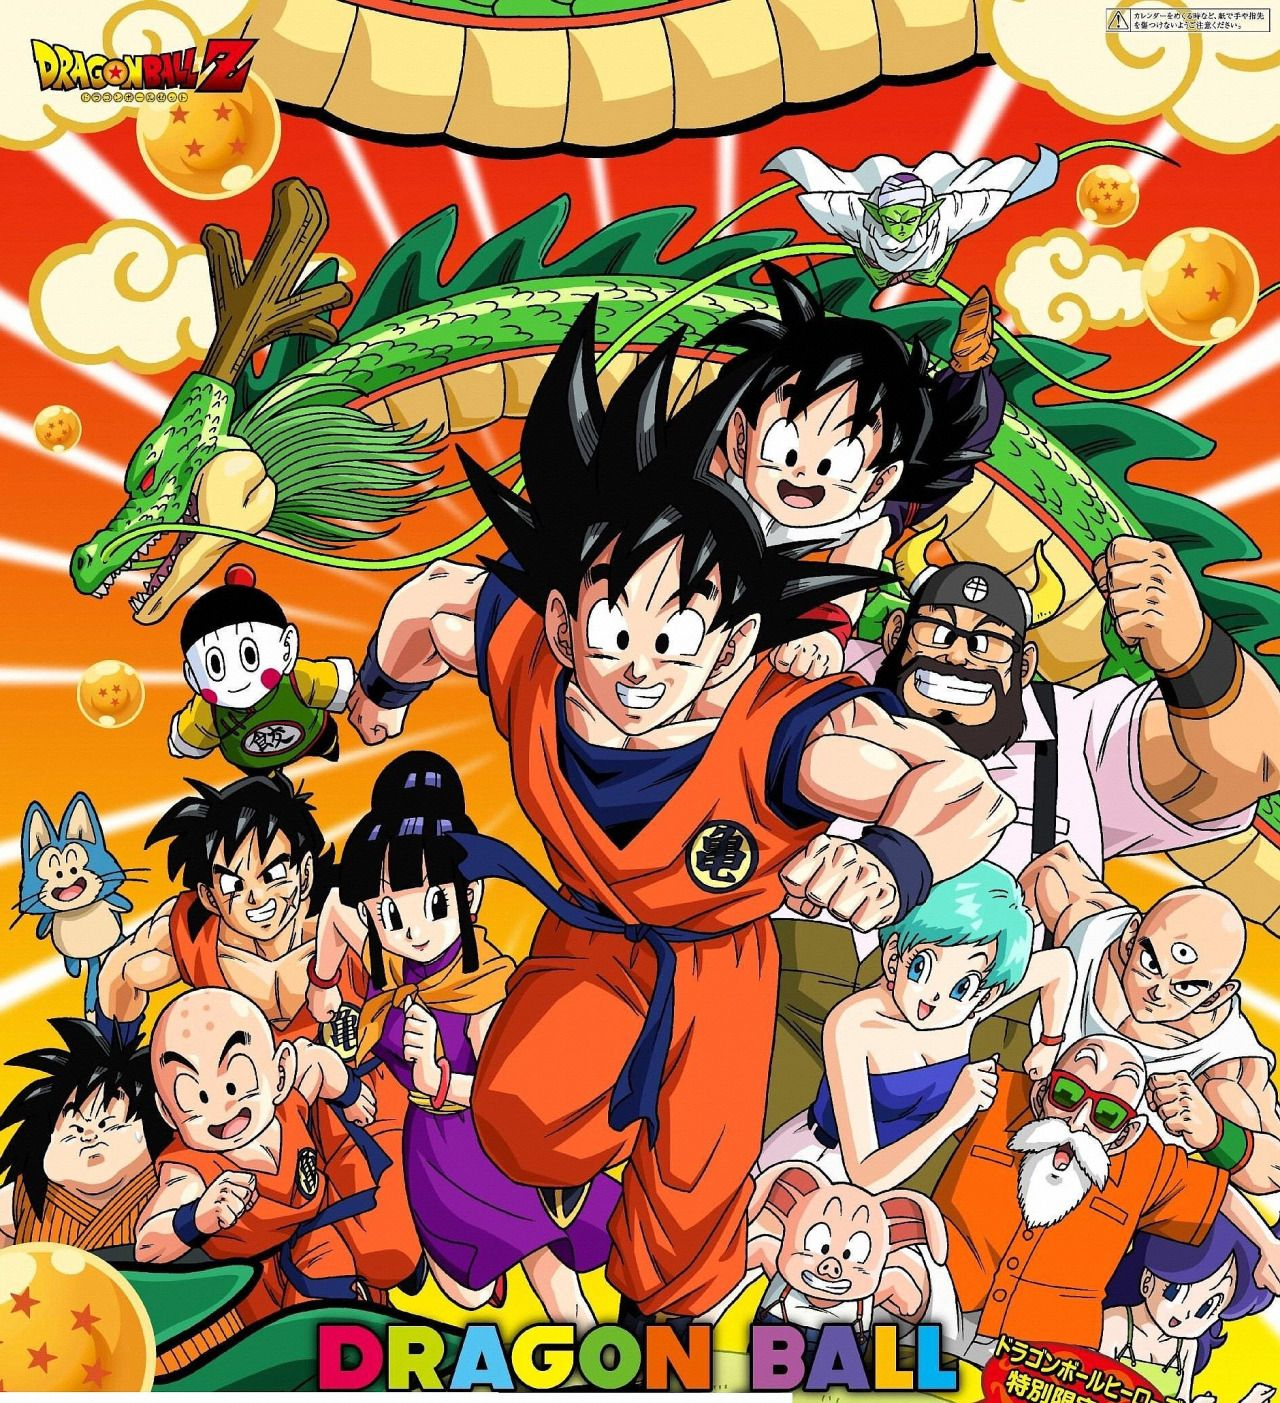 Dragon Ball z poster From DB 2014 calendar Published by